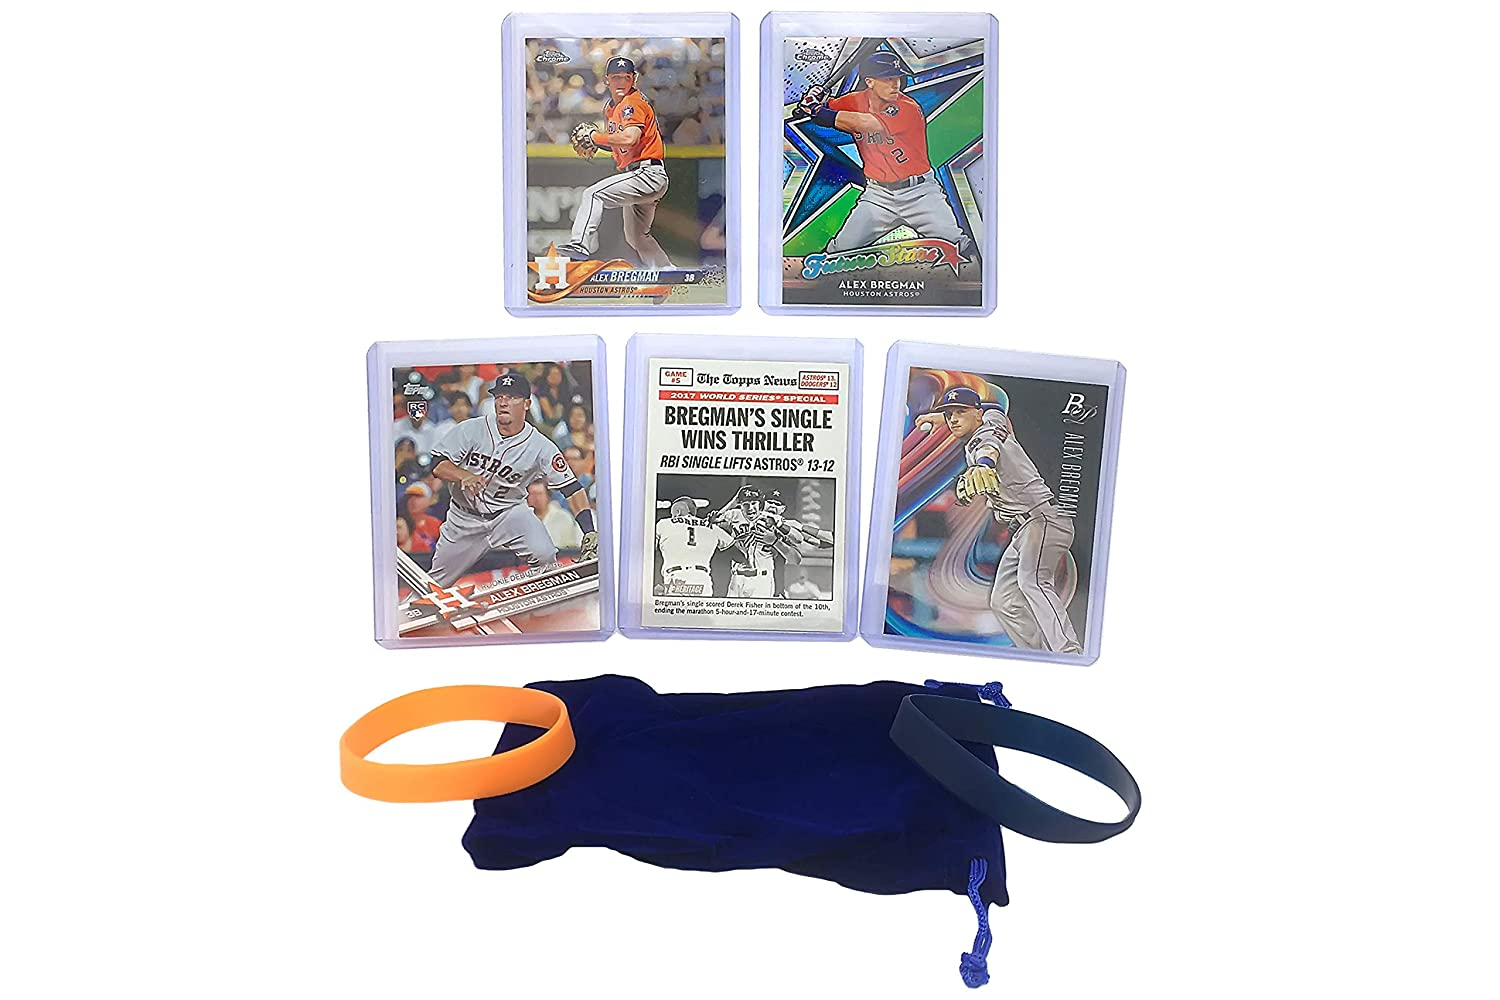 Alex Bregman Baseball Cards (5) ASSORTED Houston Astros Trading Card and Wristbands Gift Bundle Panini Bowman Topps